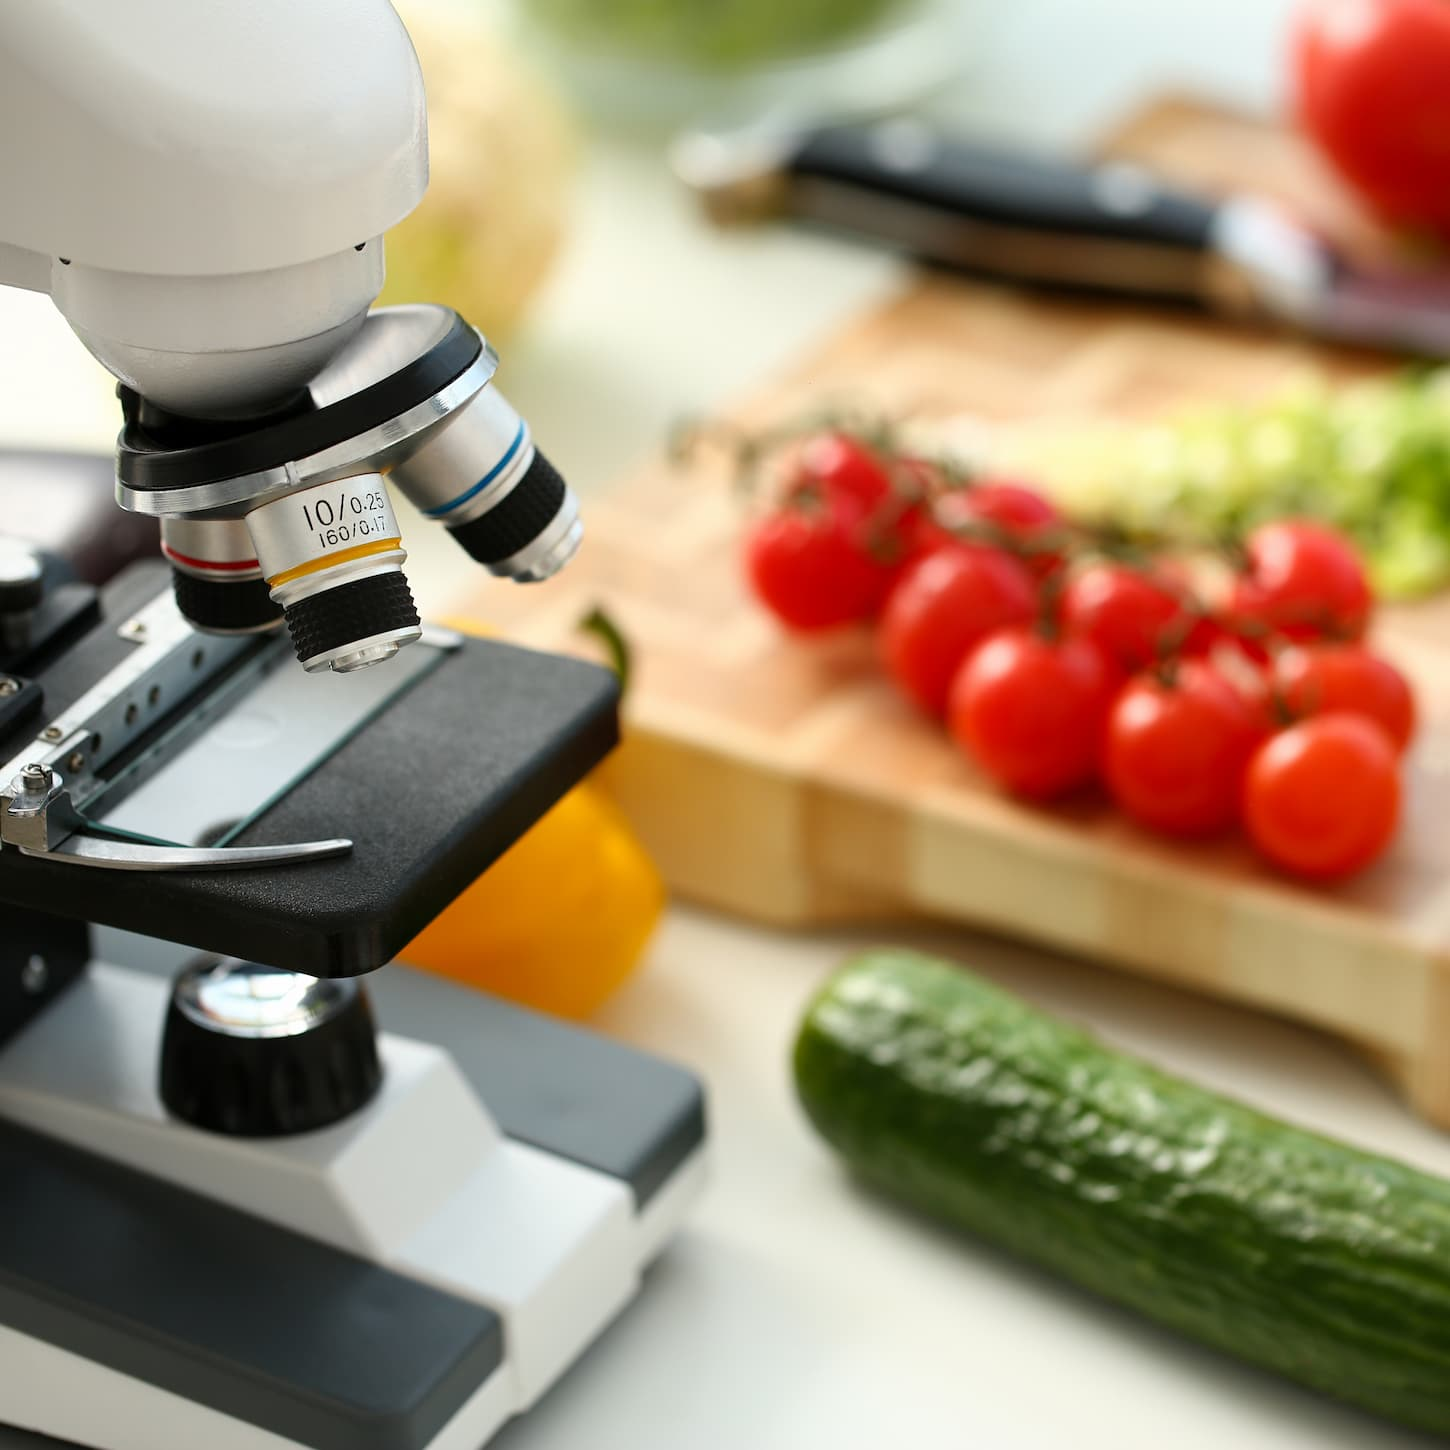 microscope-head-kitchen-background-vegetables-concept-nitrates